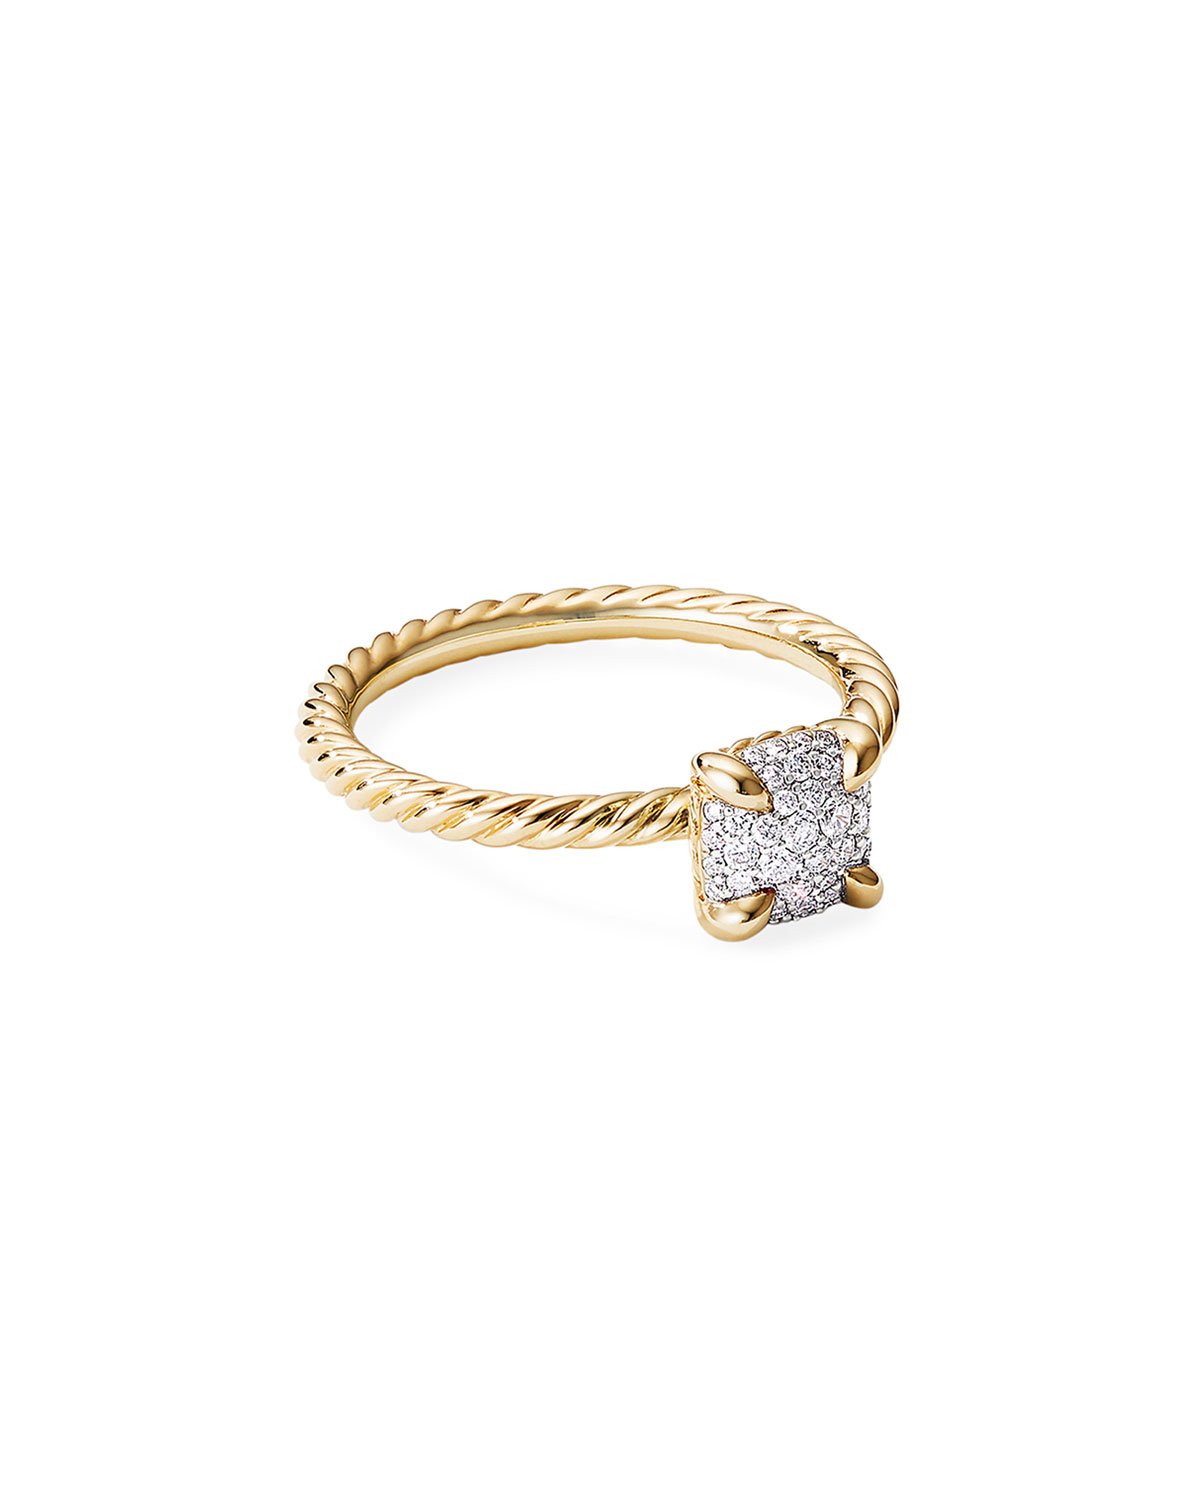 David Yurman Chatelaine Ring in 18K Yellow Gold with Full Pave Diamonds, Size 5